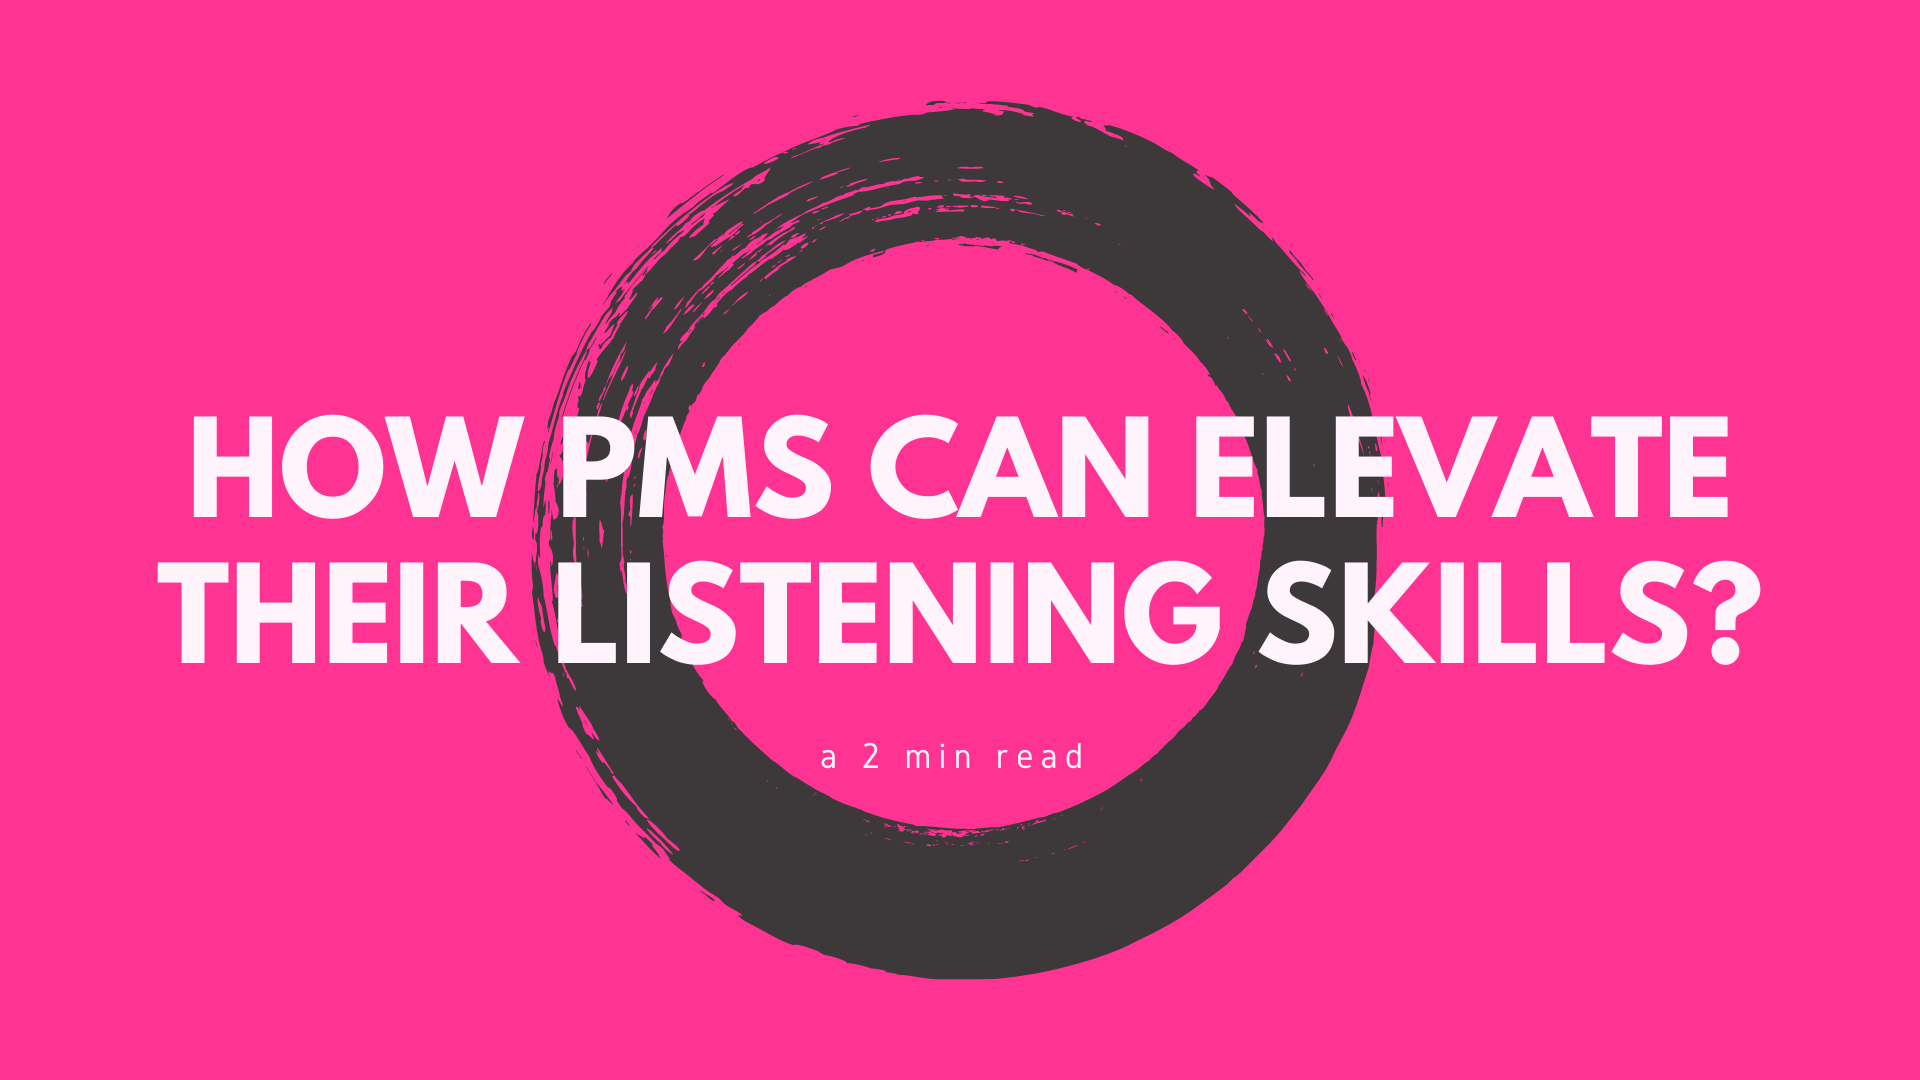 How PMs can elevate their listening skills?